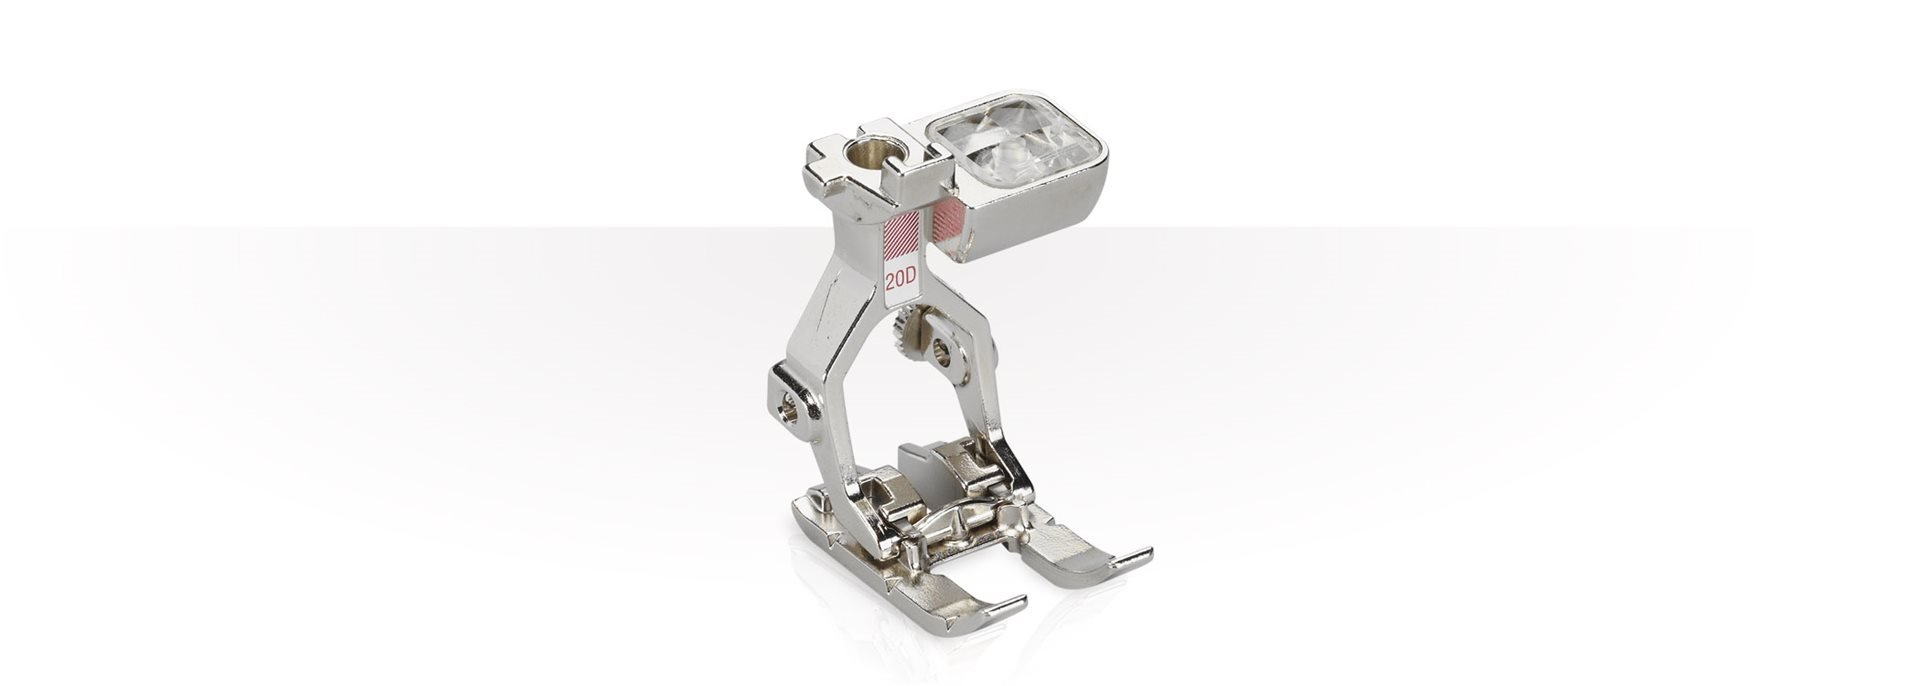 #20D OPEN EMBROIDERY FOOT (9MM)